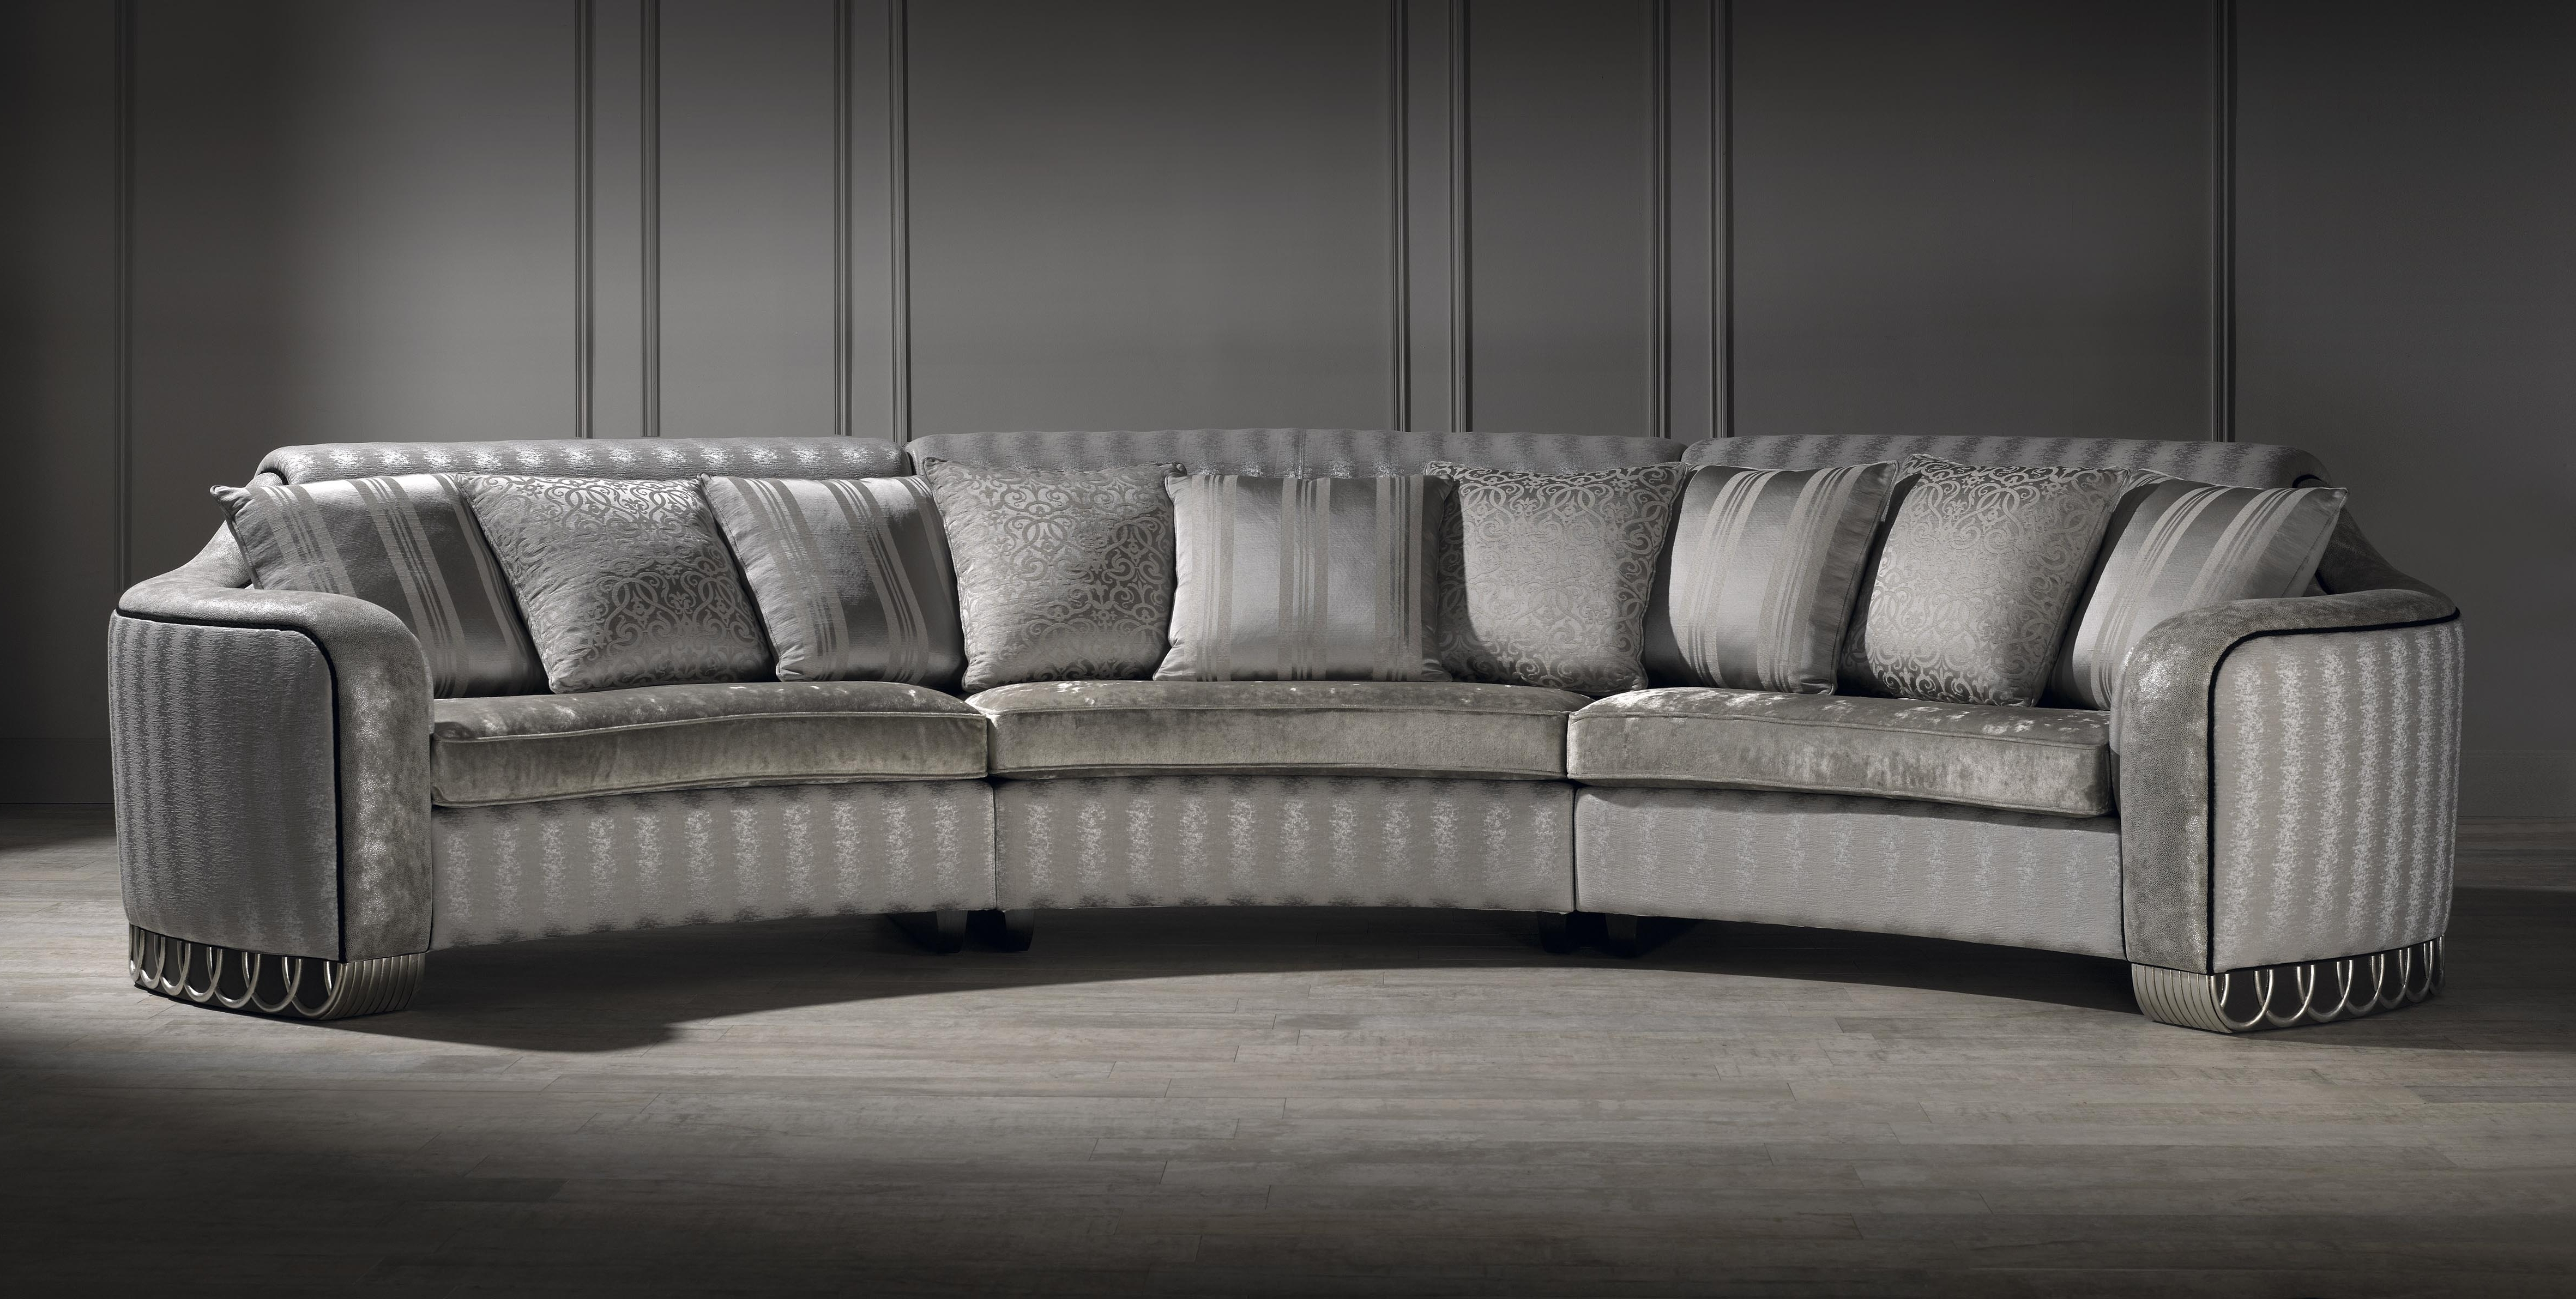 Silver Curved Sofa, Luxury Curved Sofa, Unusual Sofa, Large Sofa Intended For Favorite Unusual Sofa (View 5 of 15)